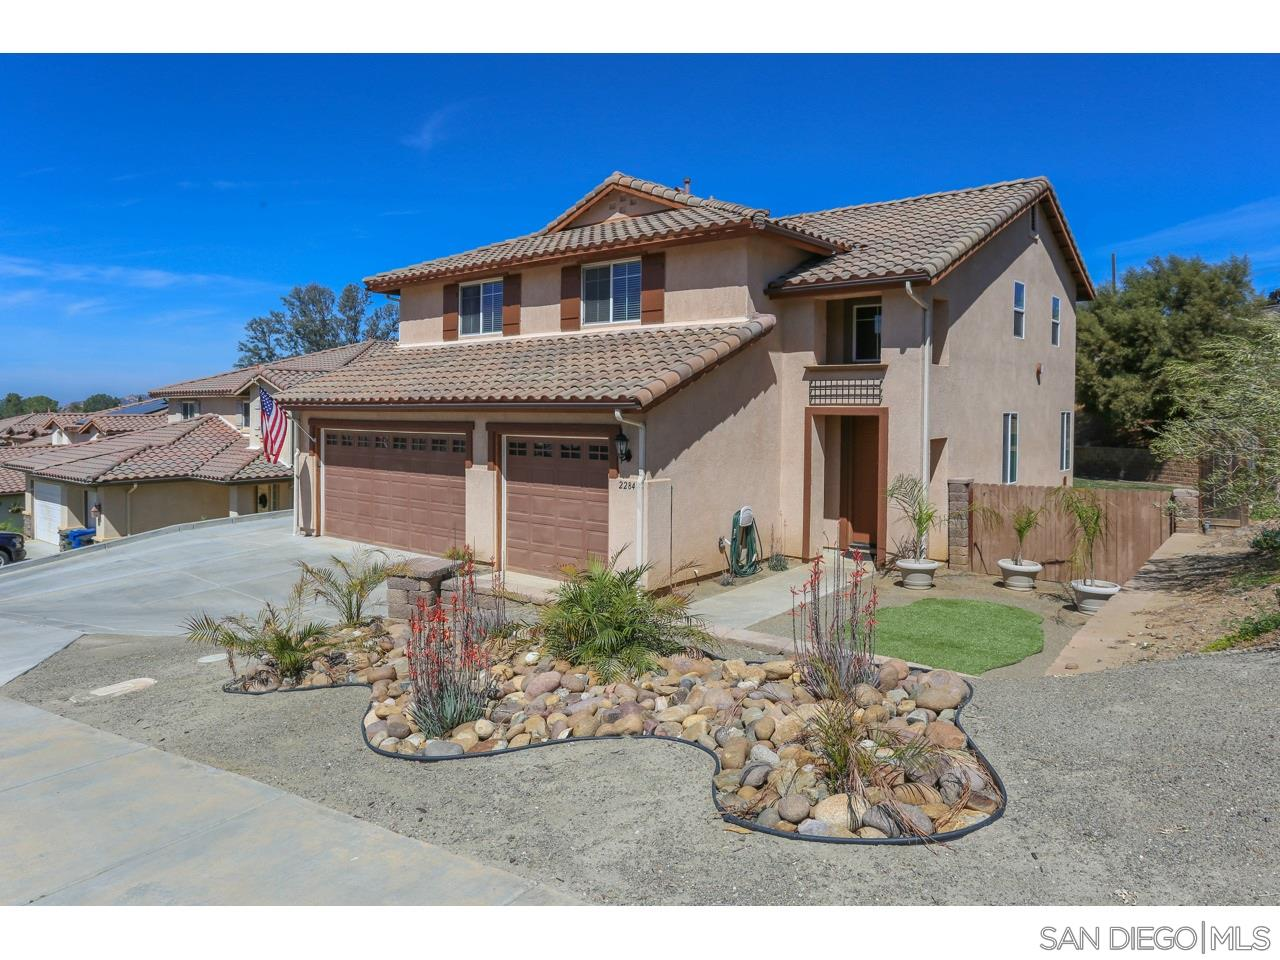 2284 Marquand Ct, Alpine, California 91901, 4 Bedrooms Bedrooms, ,3 BathroomsBathrooms,Single Family,For Sale,2284 Marquand Ct,2,210008942